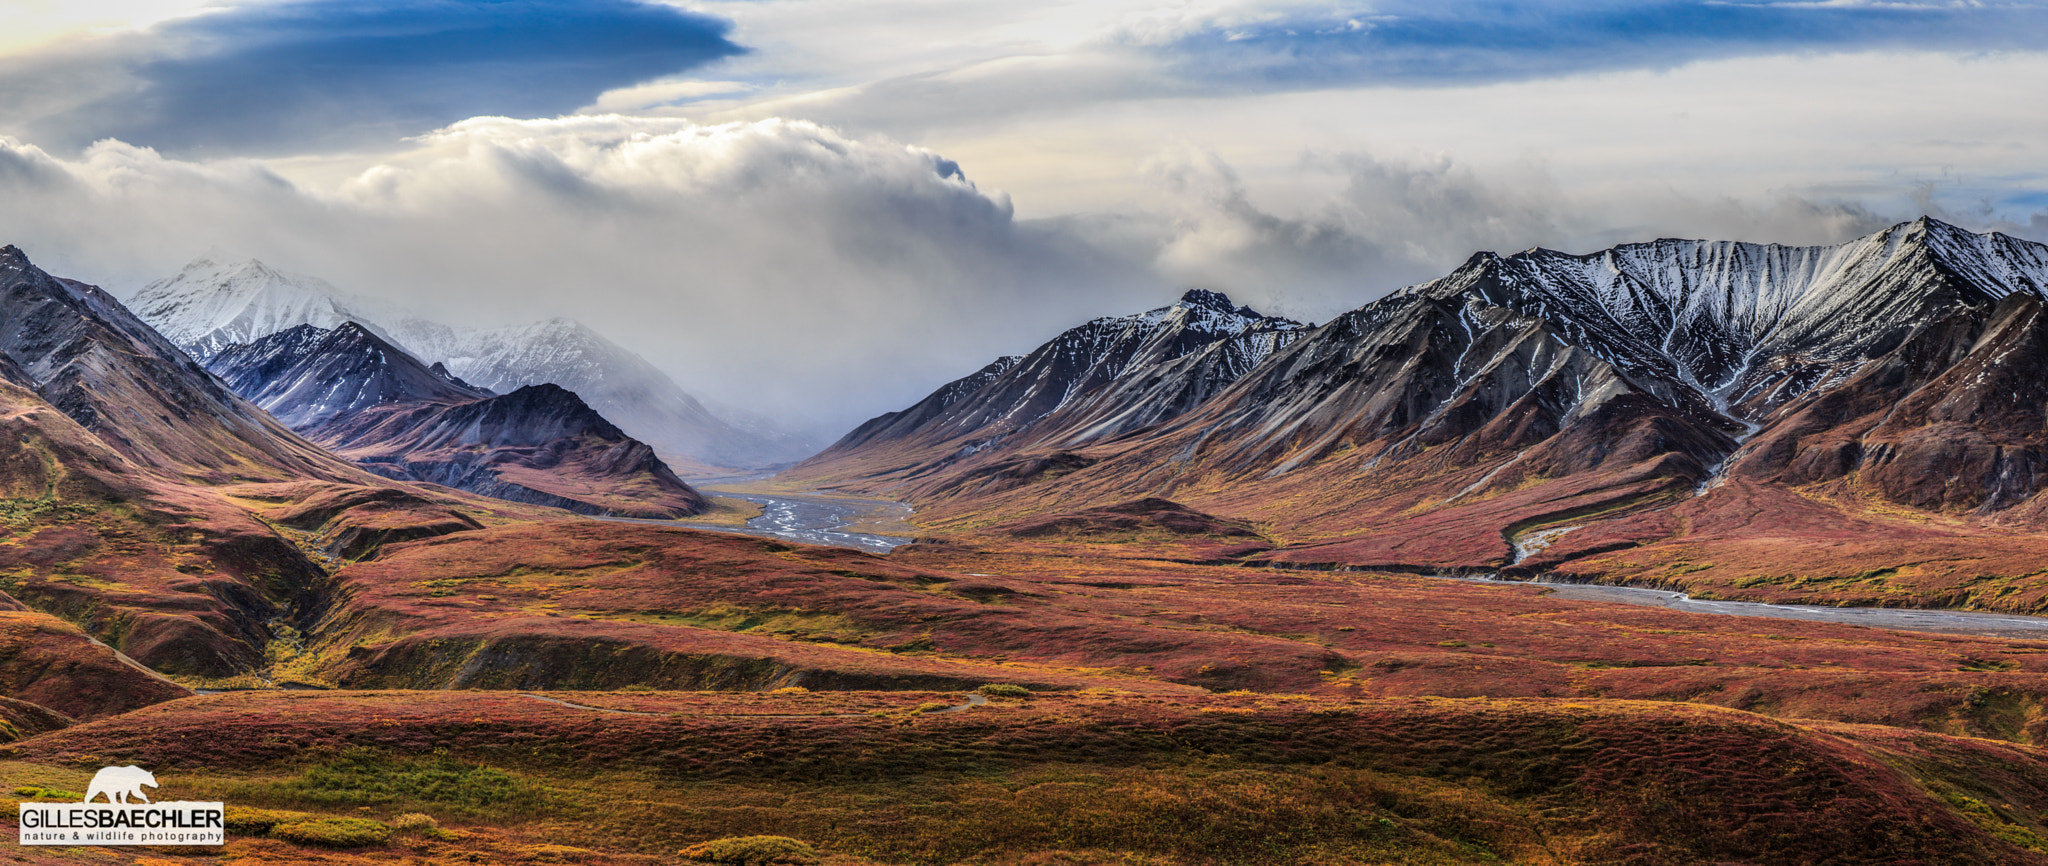 Photograph Fall in Denali II by Gilles Baechler on 500px